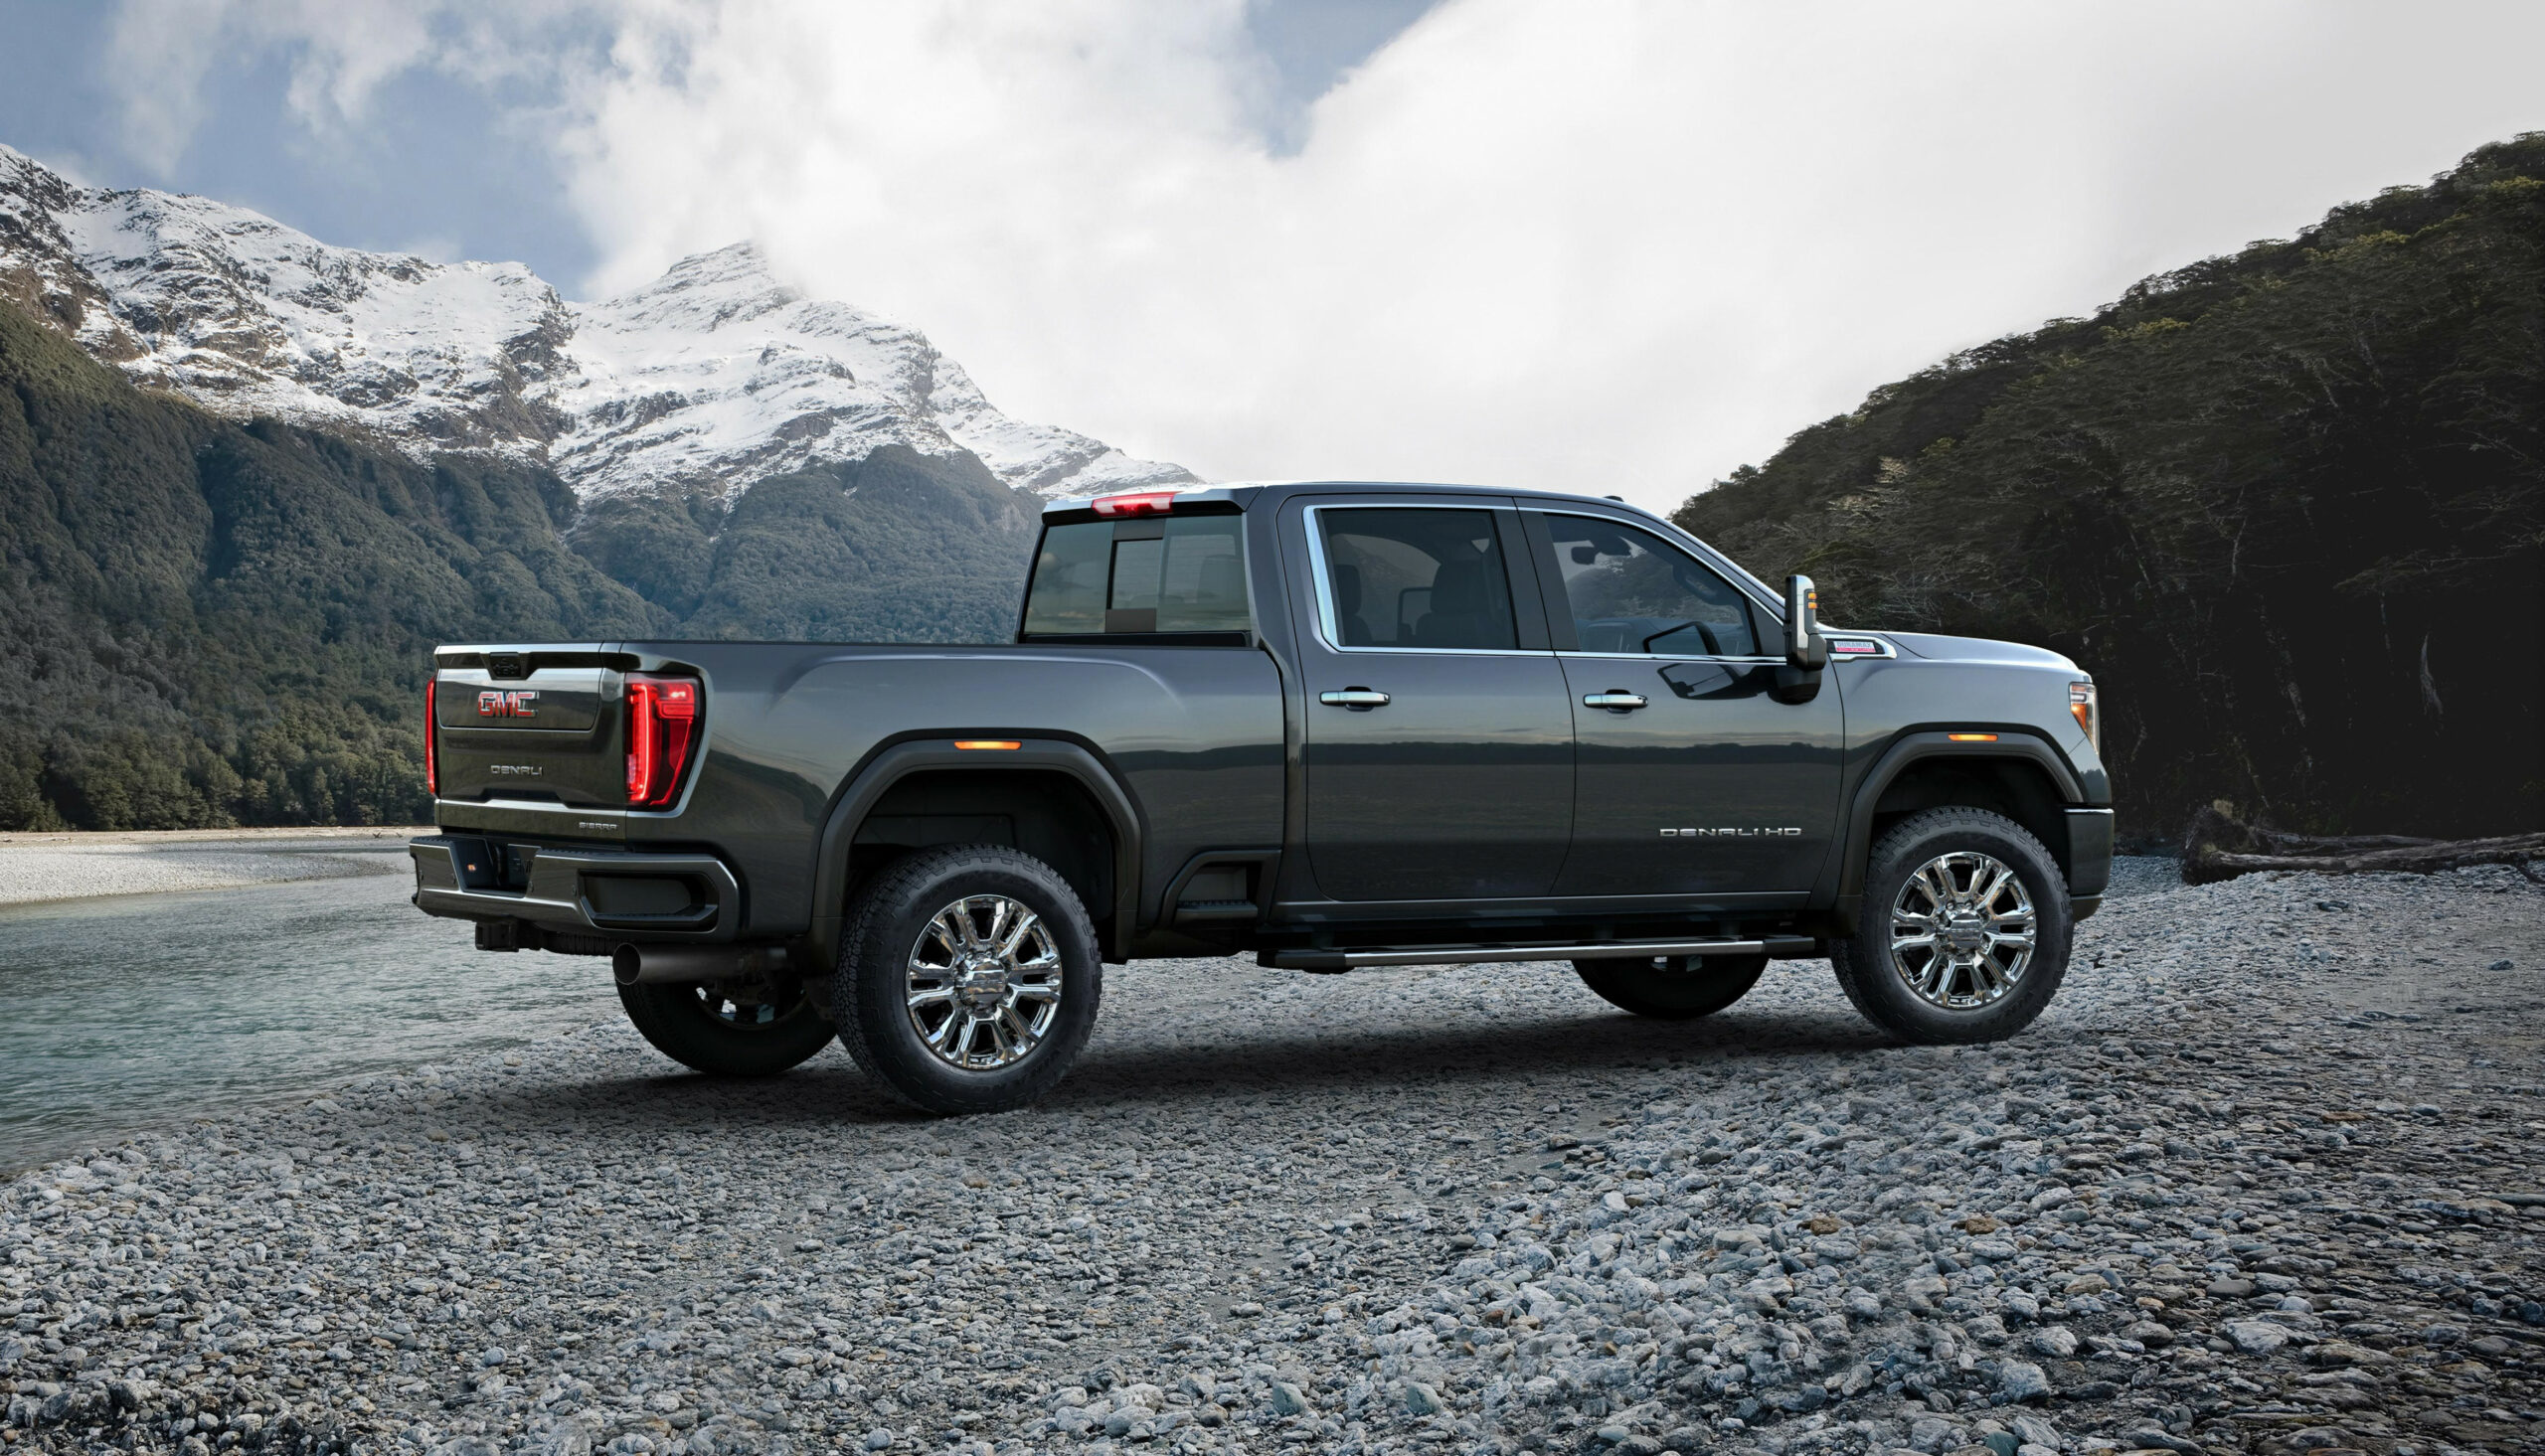 7 GMC Sierra HD Pickup – New Heavy Duty Truck with a Denali Model - gmc new truck 2020